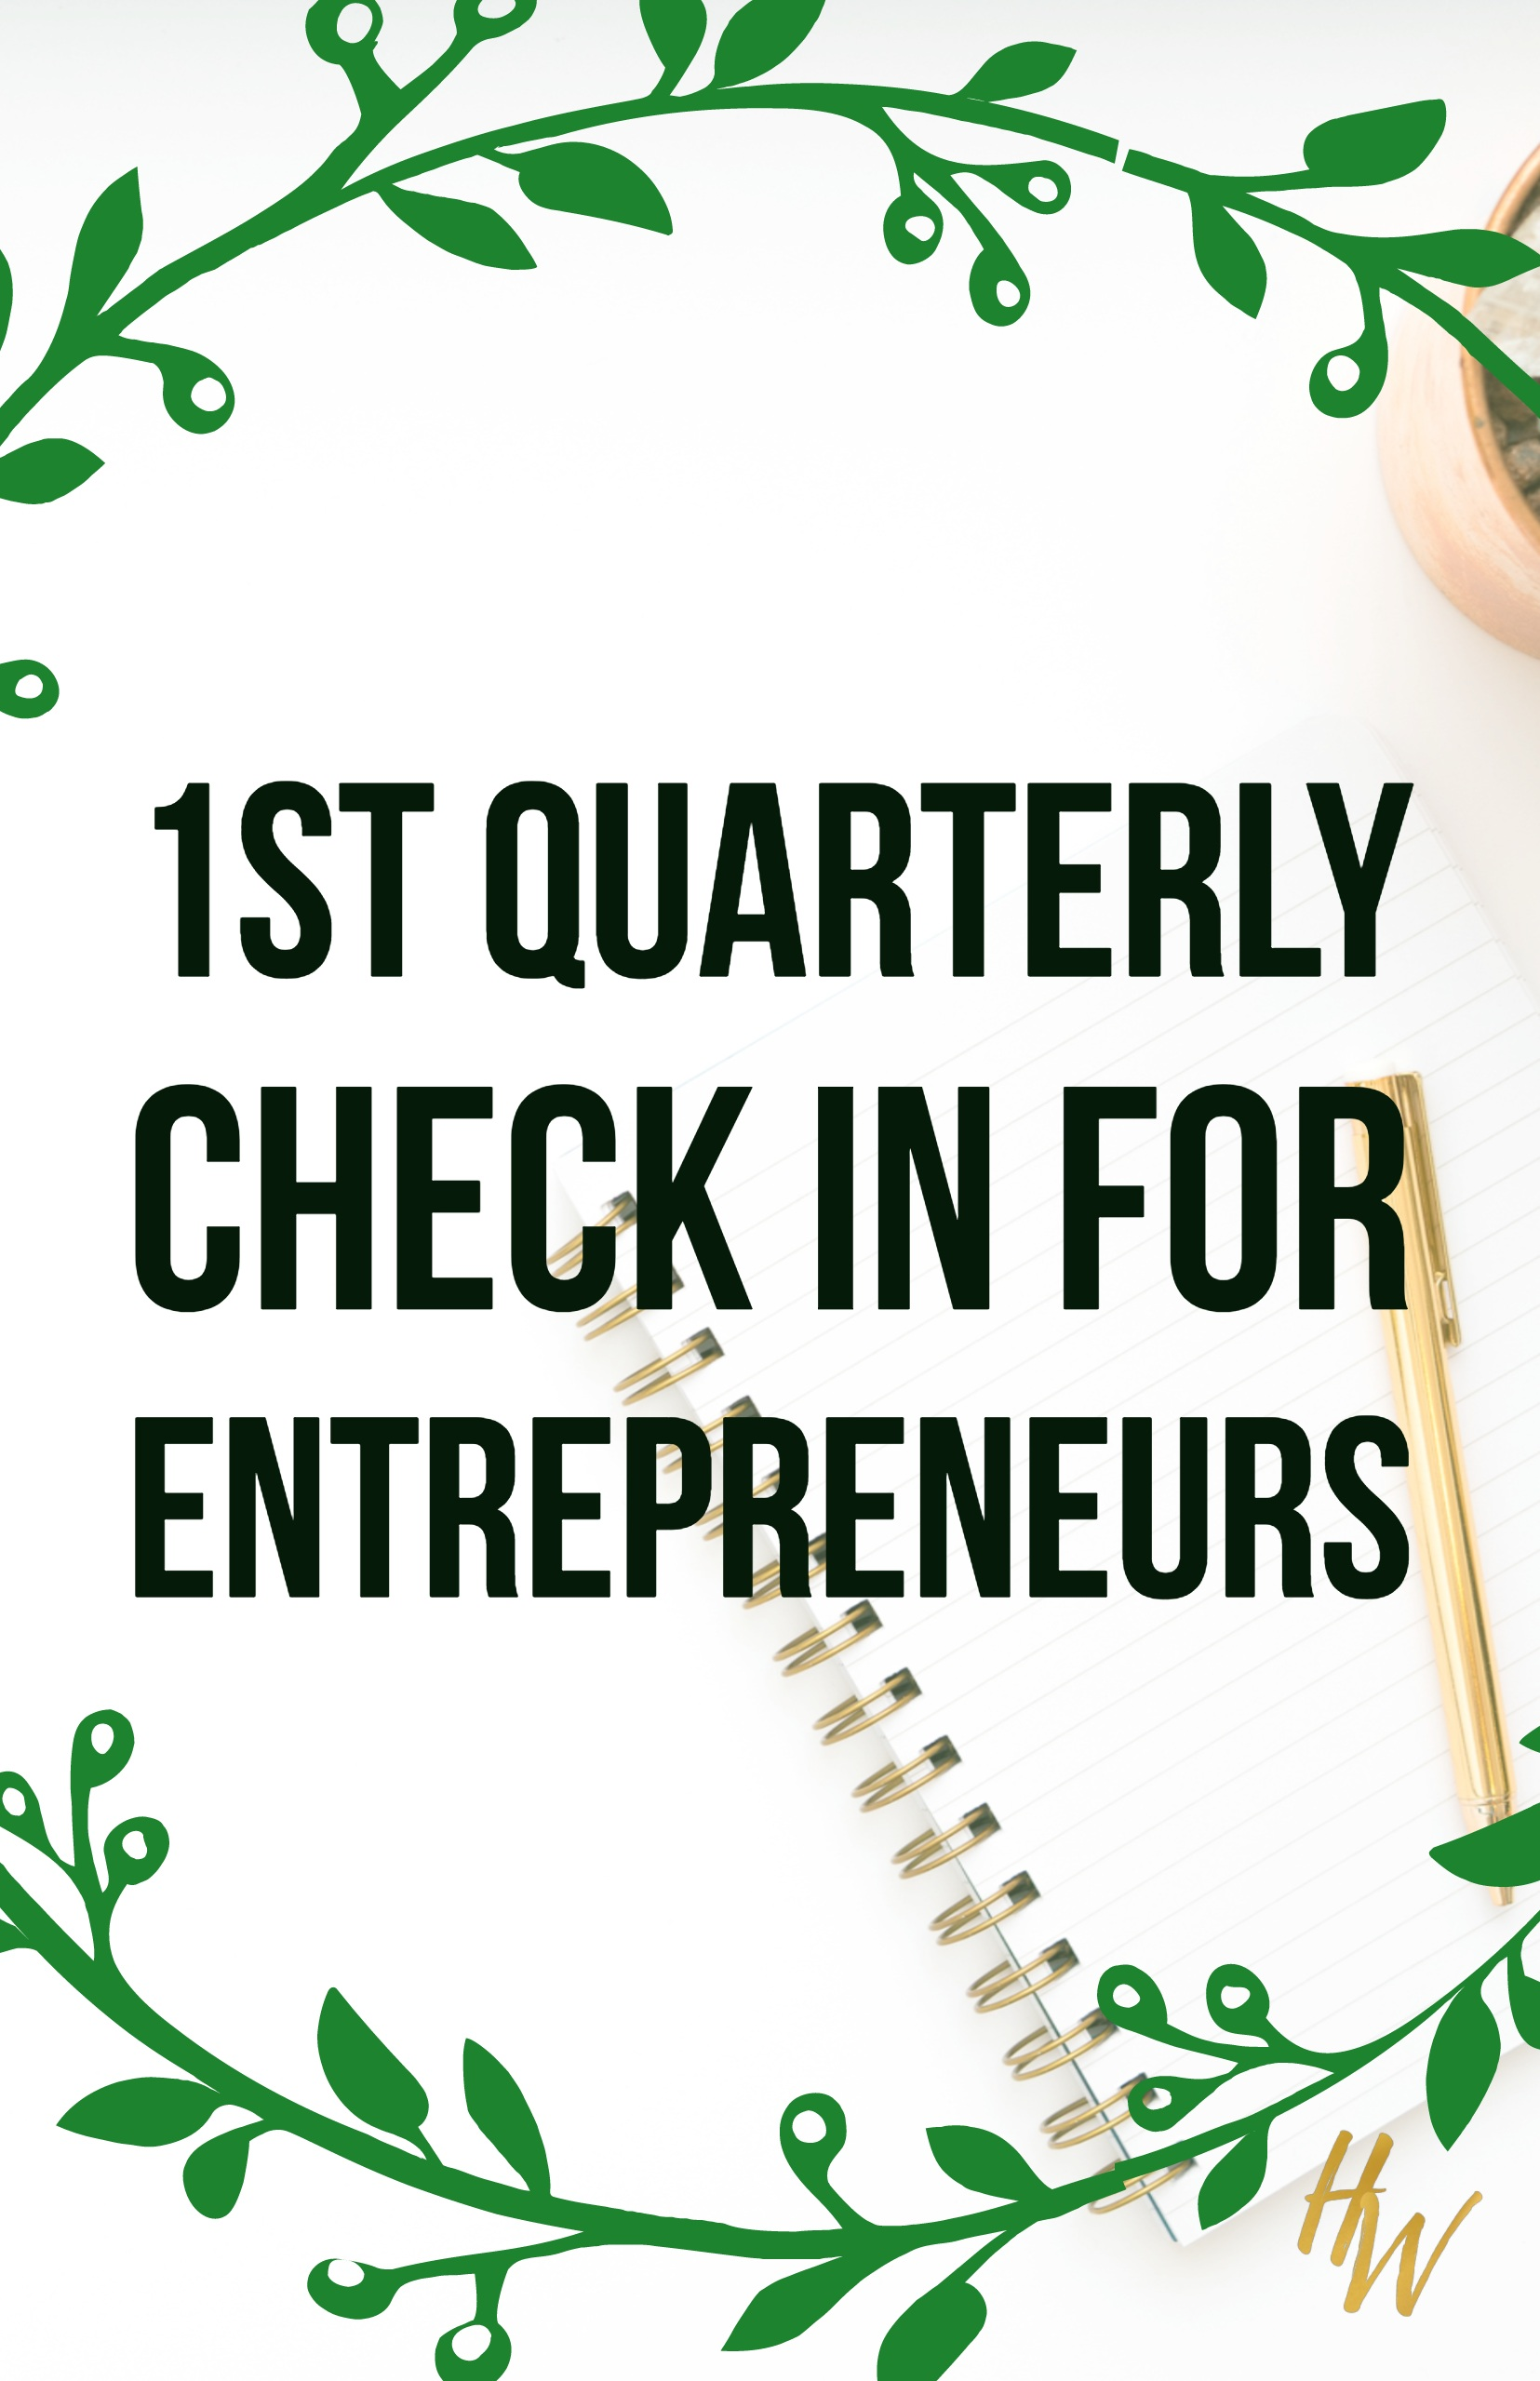 1st quarterly check in for entrepreneurs